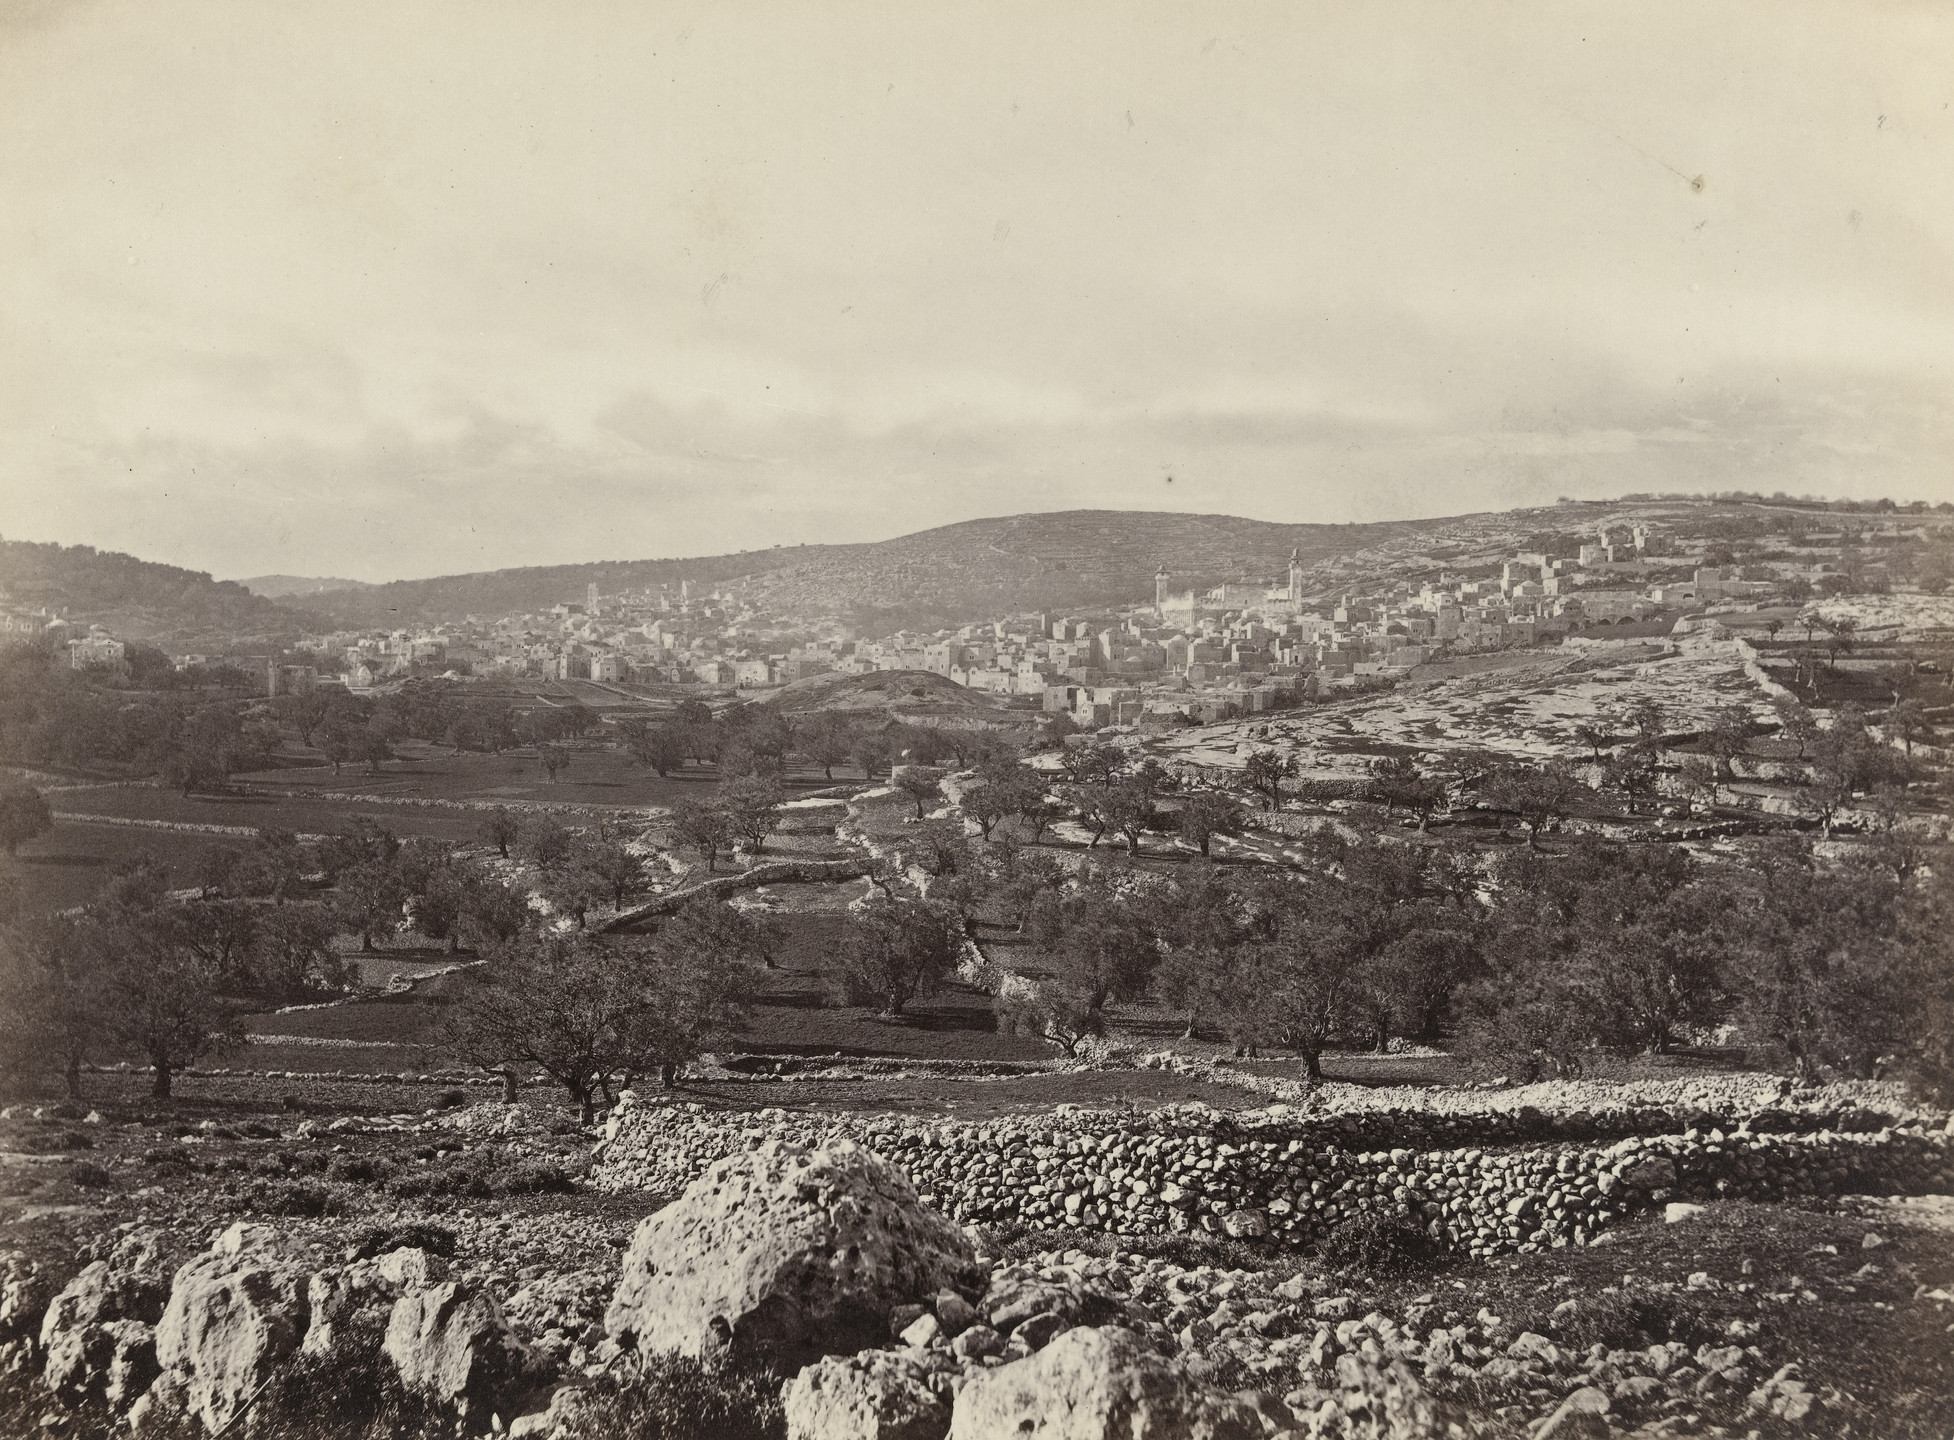 Francis Frith. Hebron and the Plain of Mamre, with Mosque Covering the Cave of Machpelah (#559). c. 1860